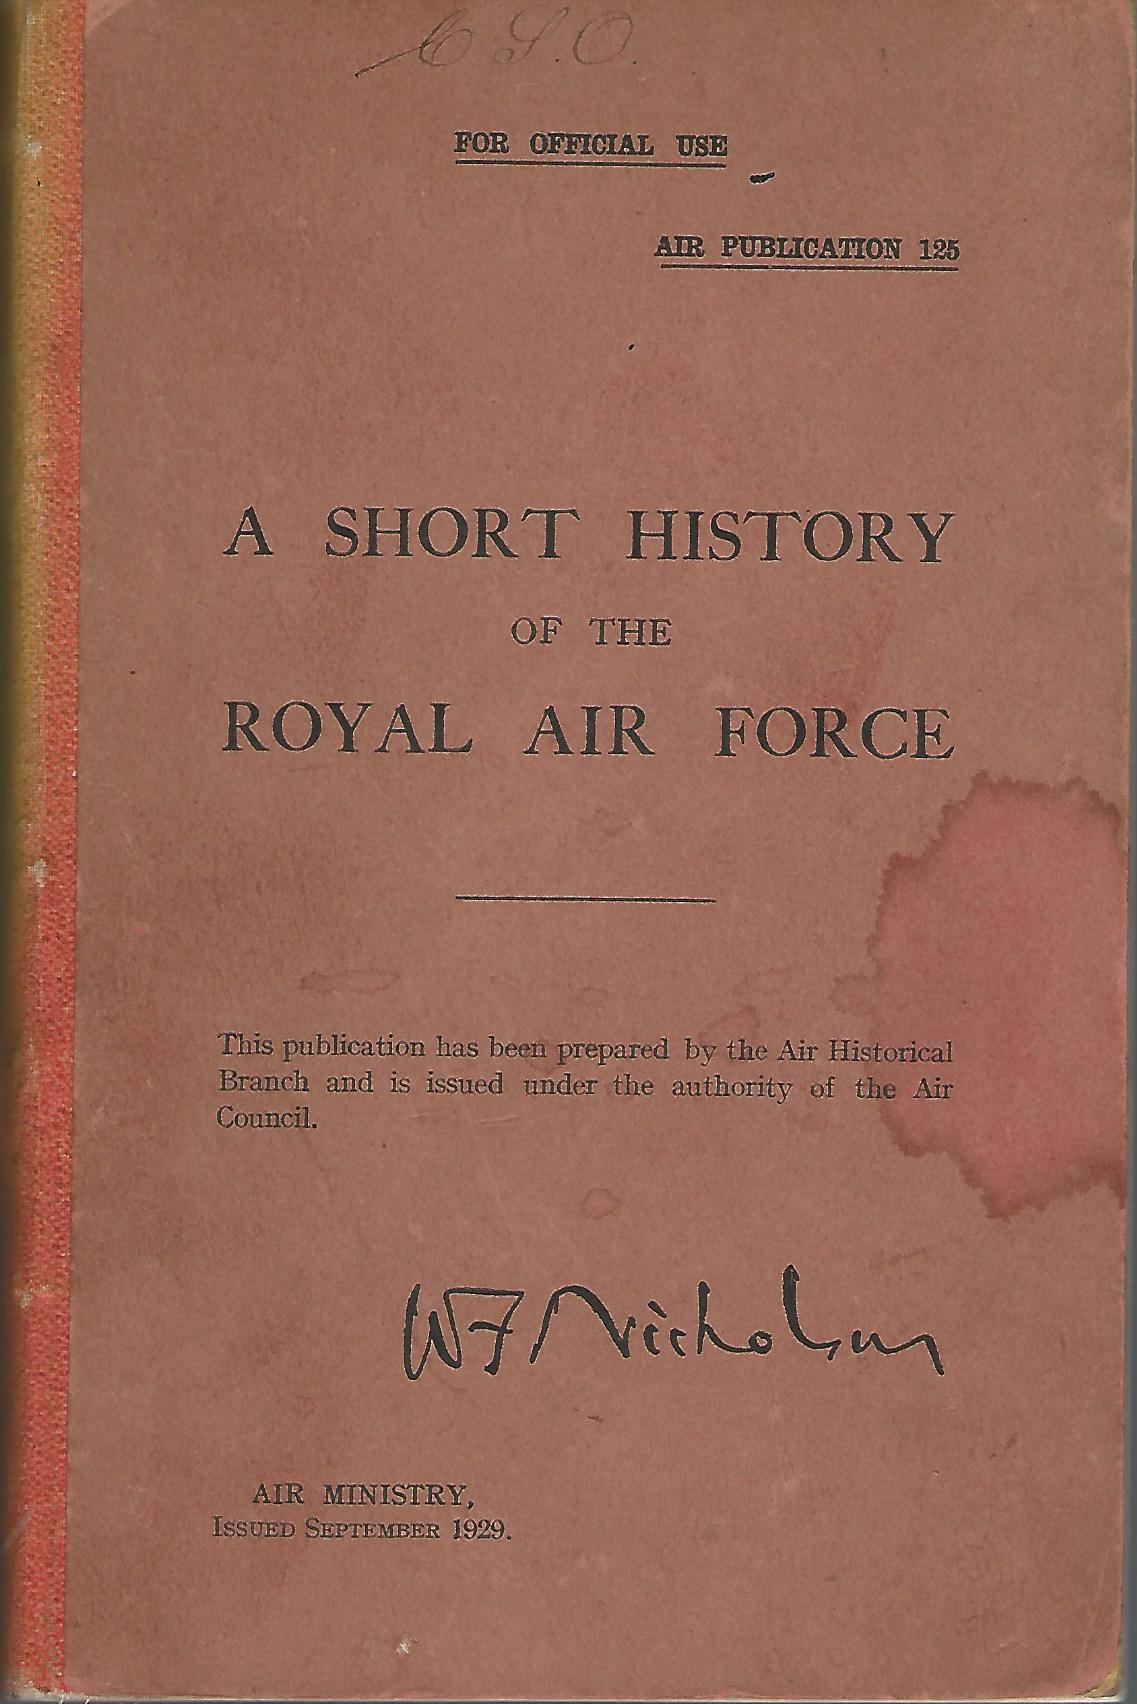 Image for A Short History of the Royal Air Force: Air Publication 125.